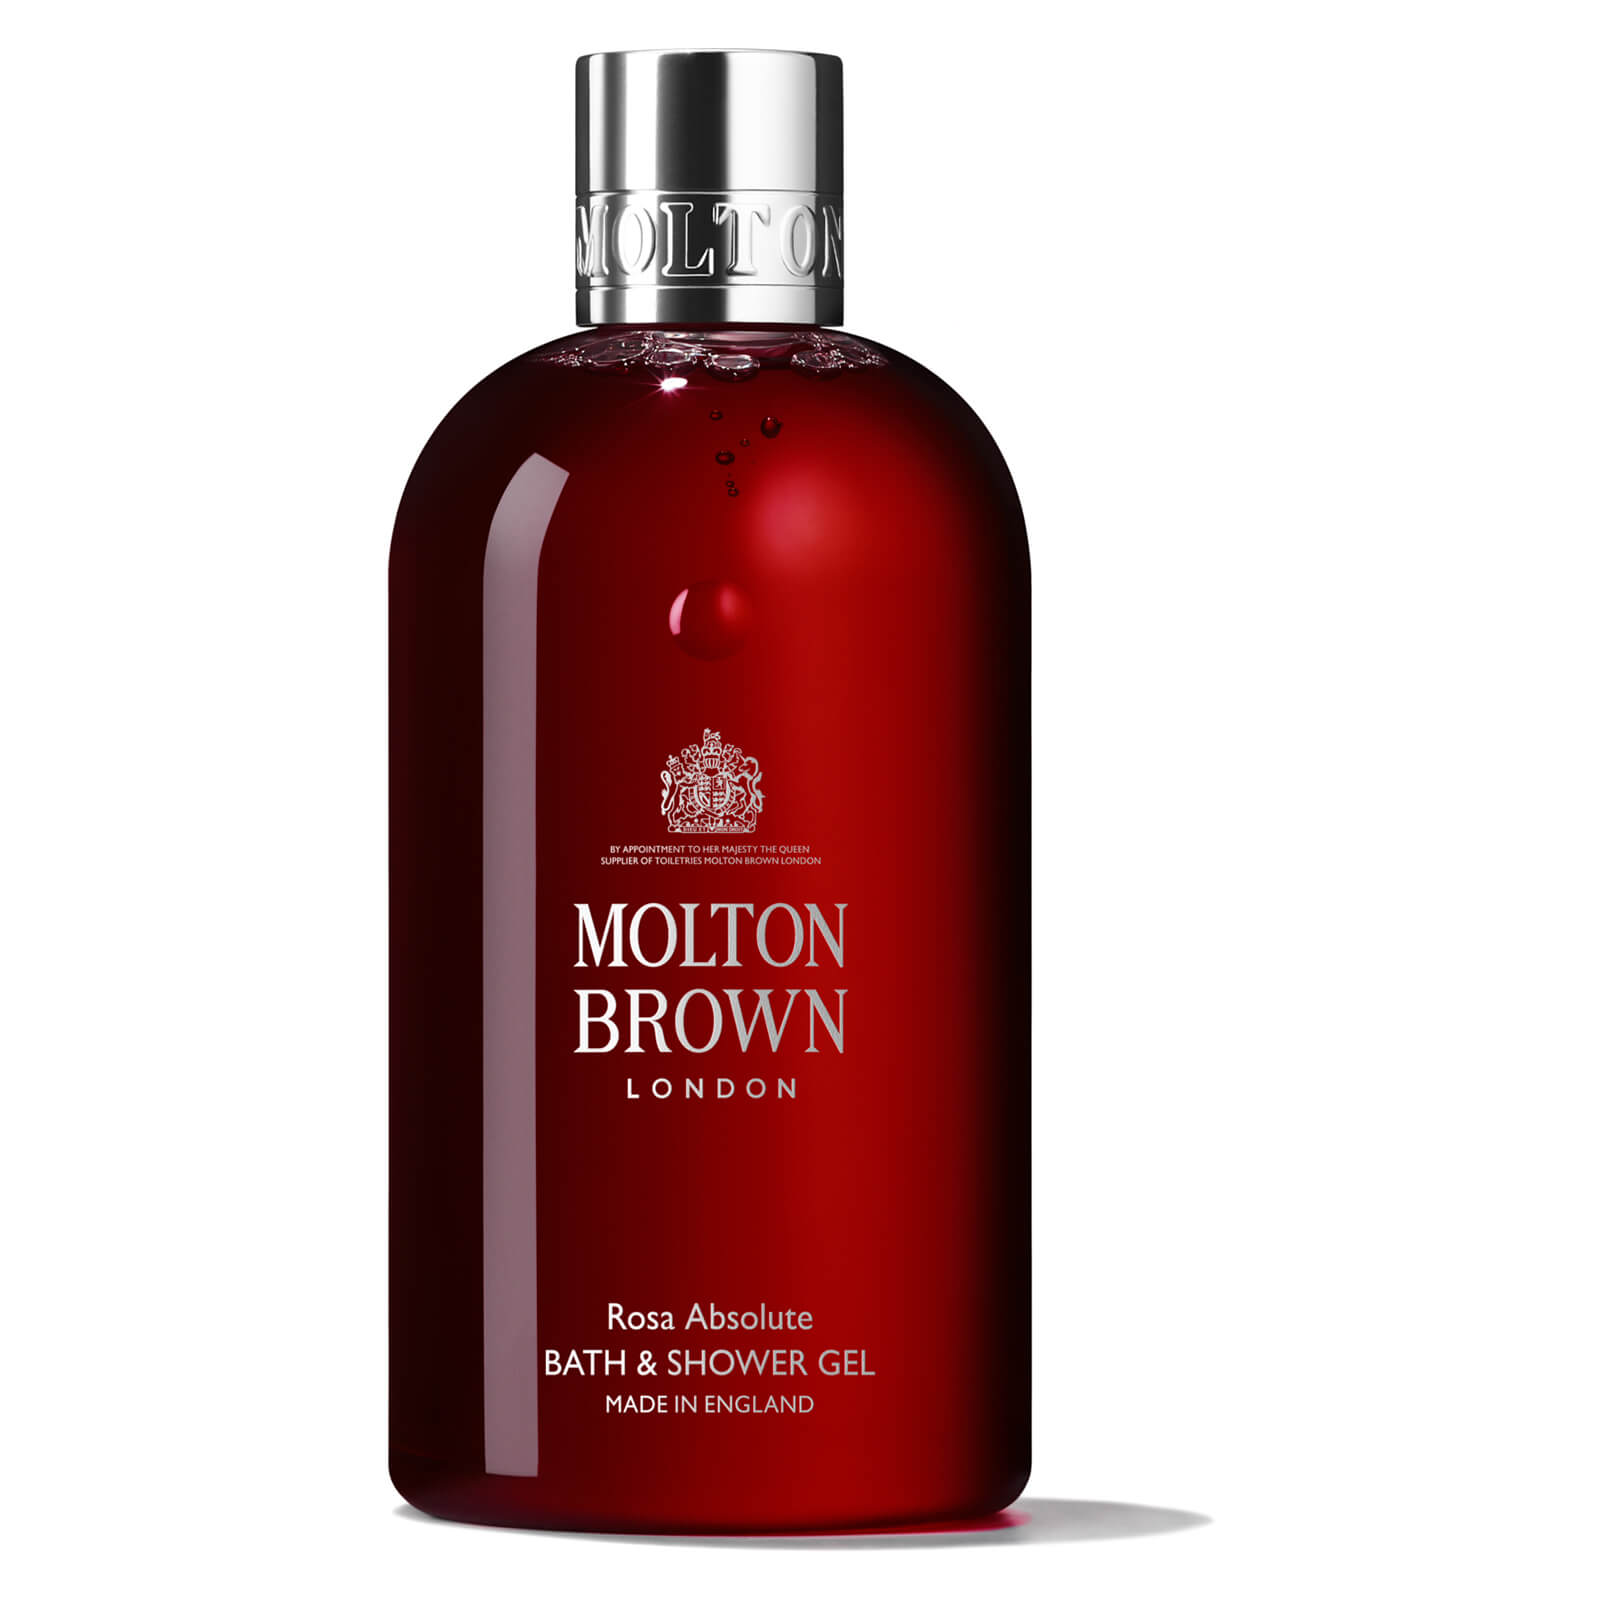 Molton Brown 摩顿布朗 Rosa Absolute 玫瑰沐浴露 300ml